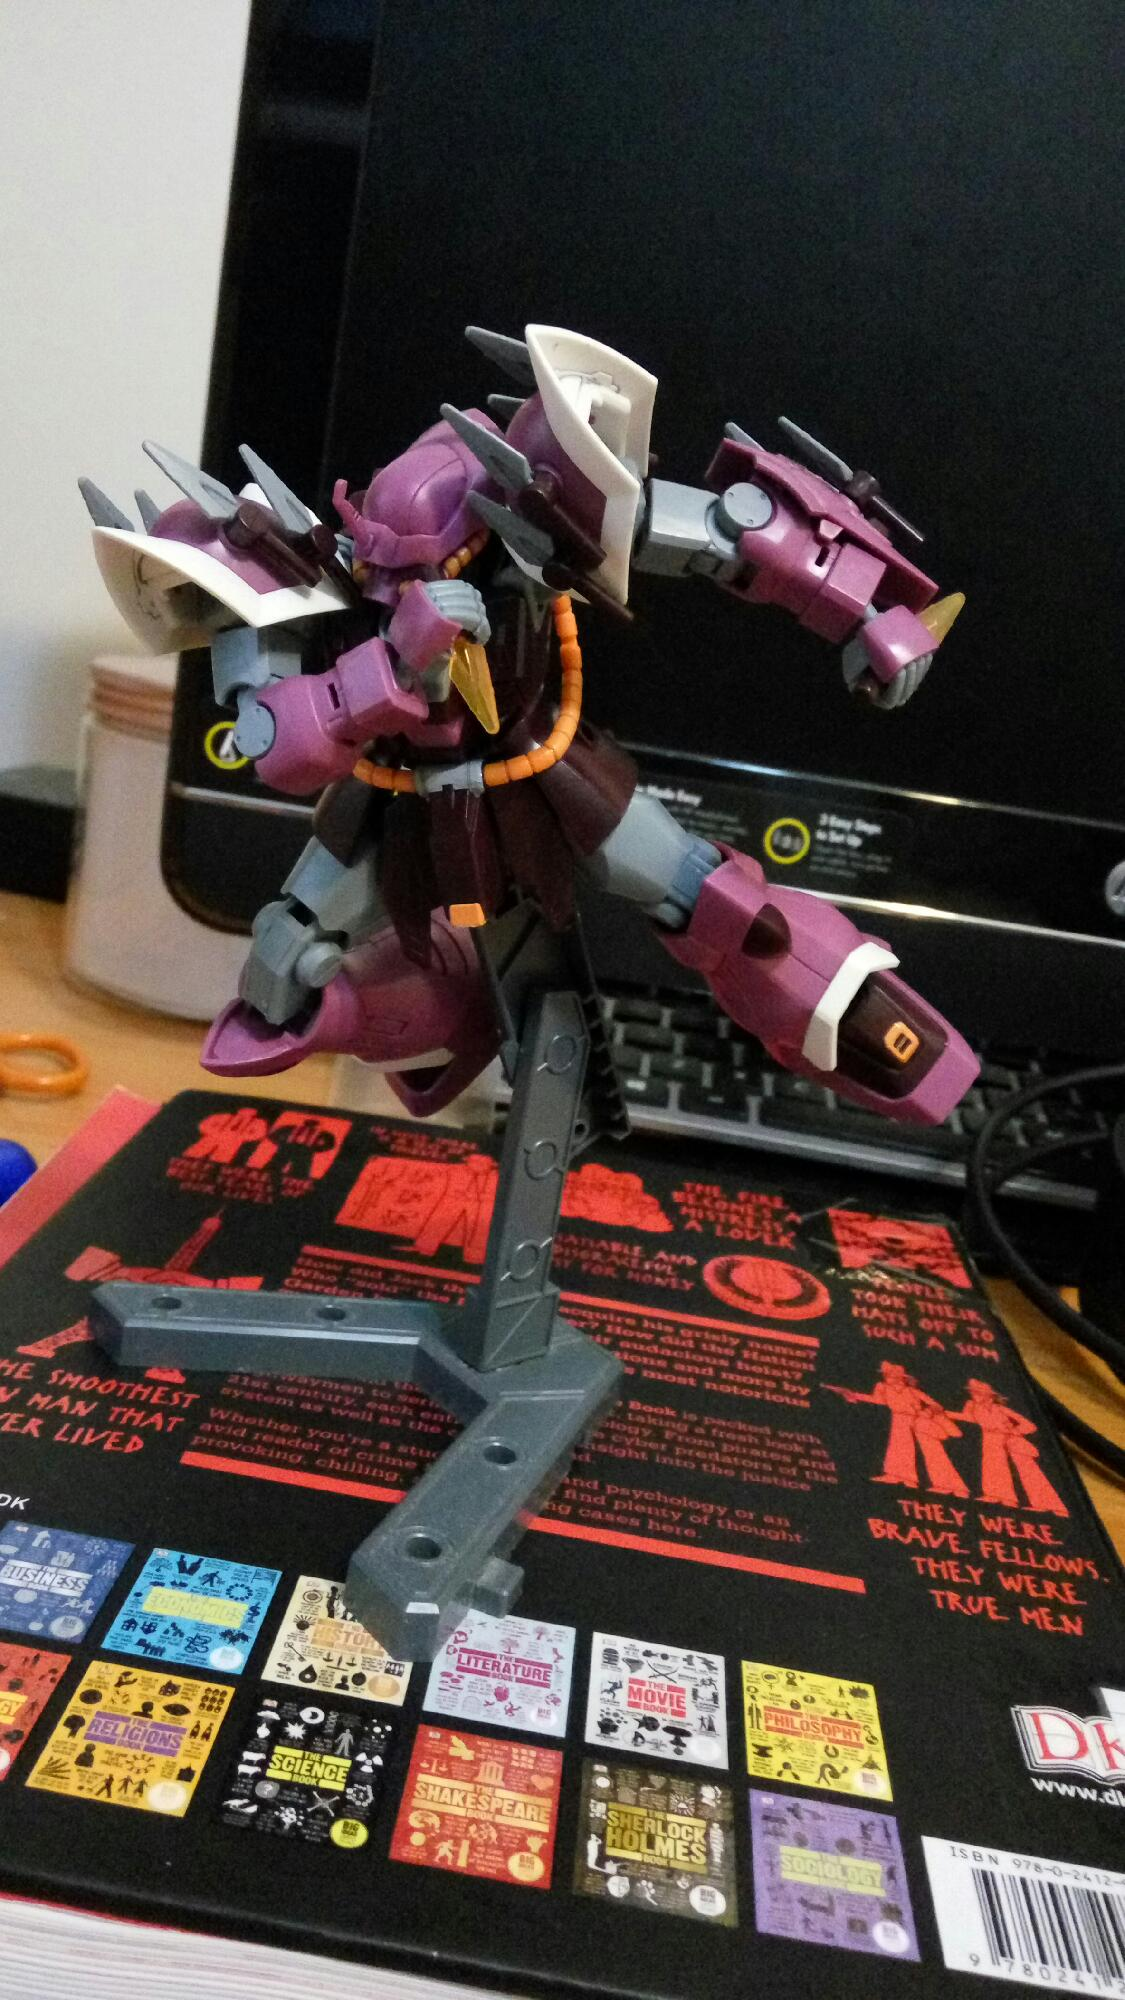 How can I find more poses for Gunpla?